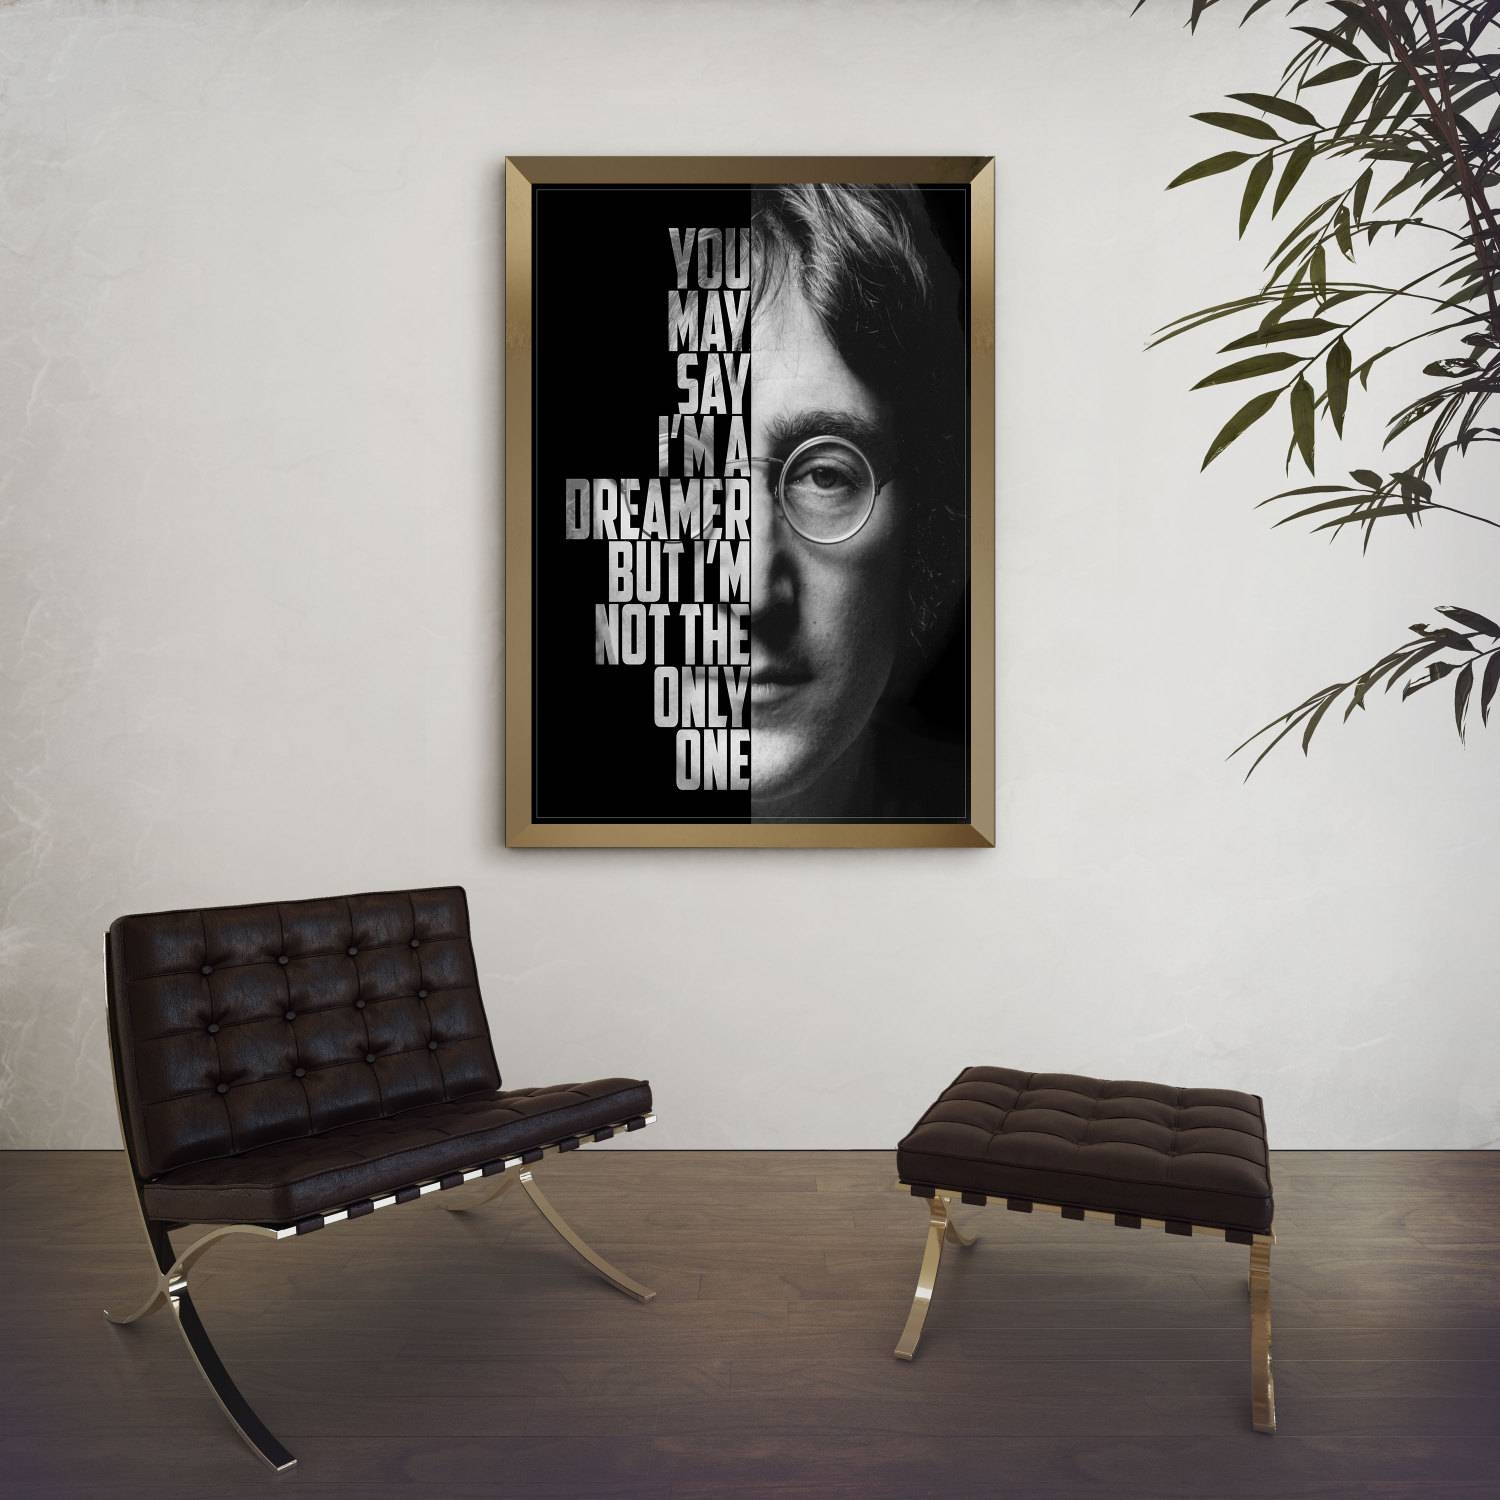 John Lennon Imagine John Lennon Poster Song Lyric Art Intended For Current Music Lyrics Wall Art (Gallery 3 of 20)